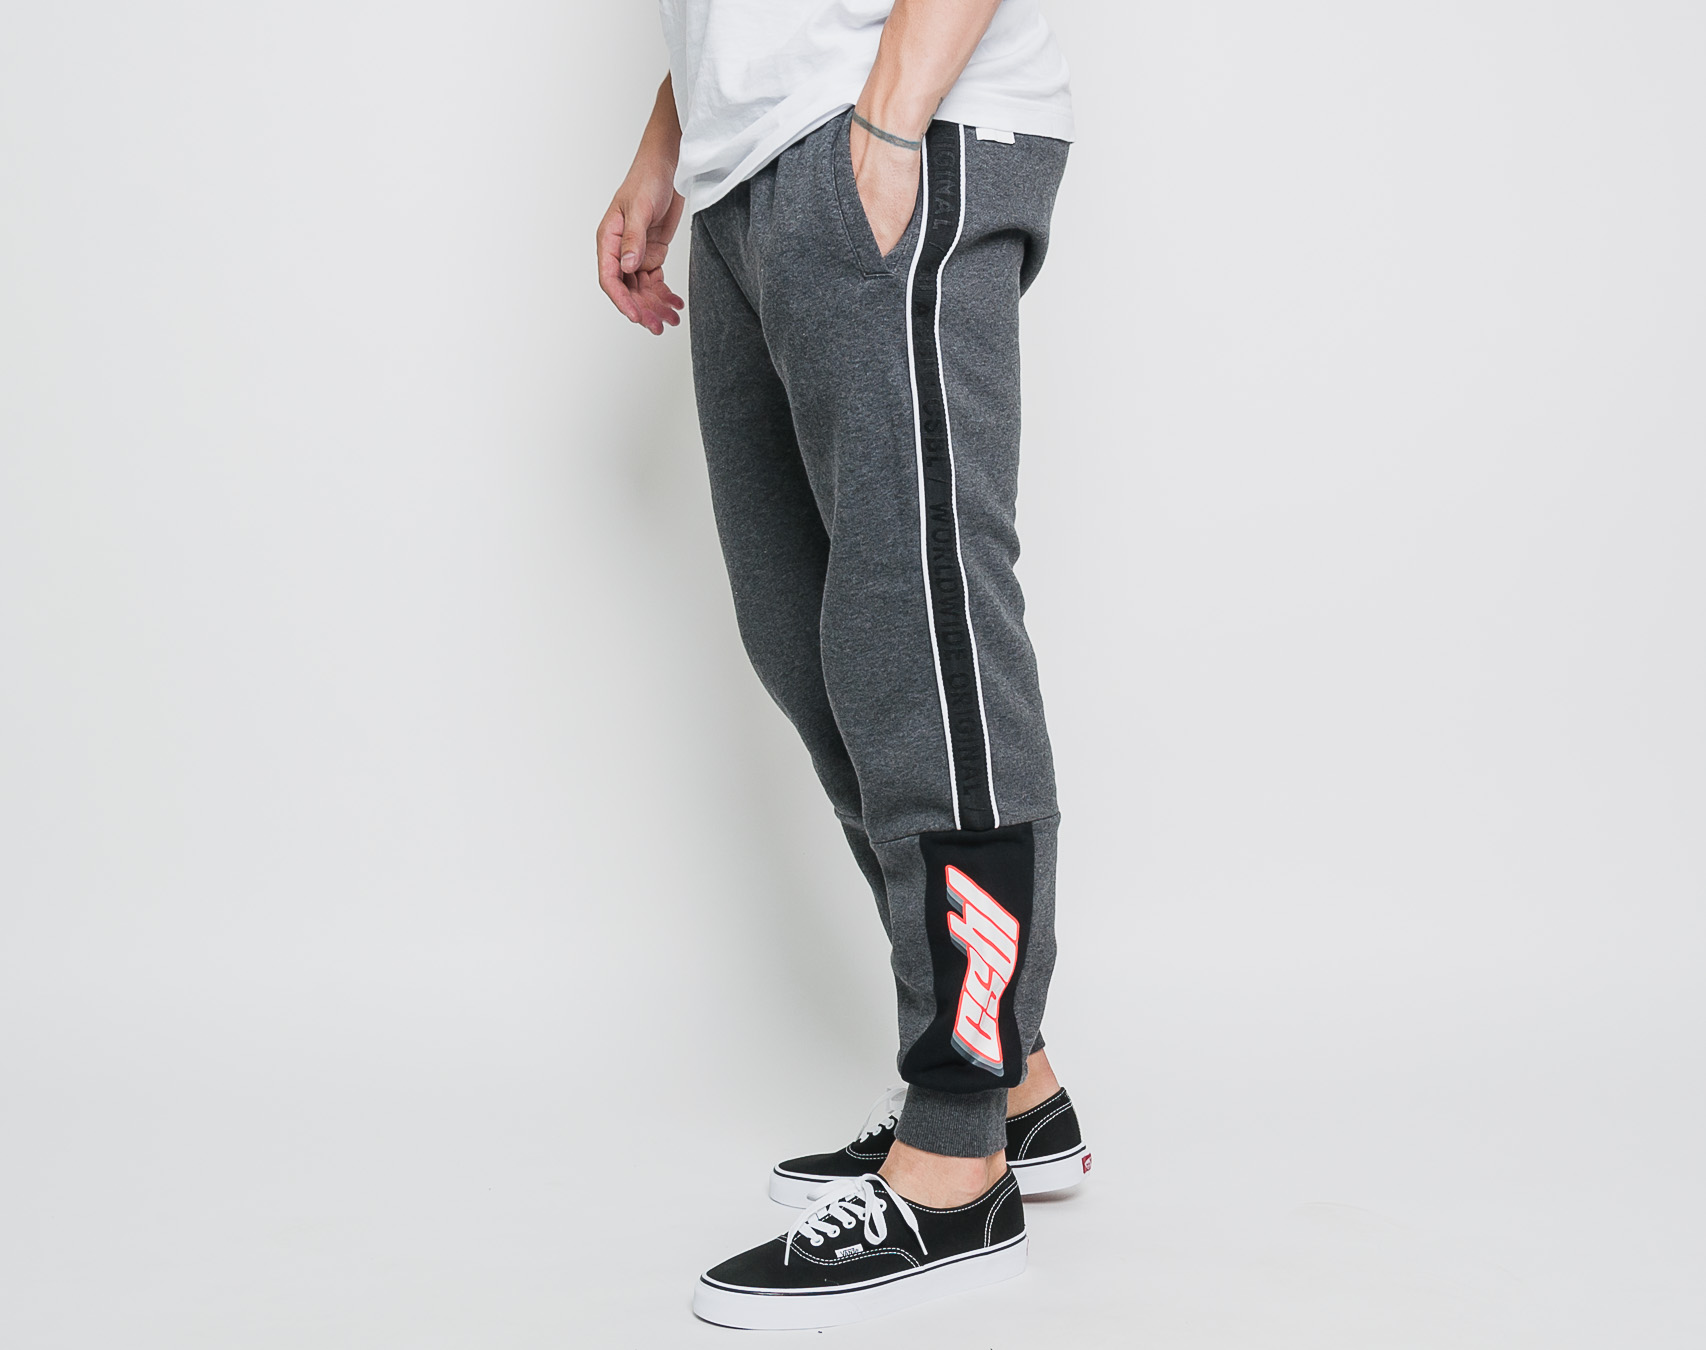 Tepláky Cayler & Sons CSBL Shifter Sweatpants Charcoal/Lazerred